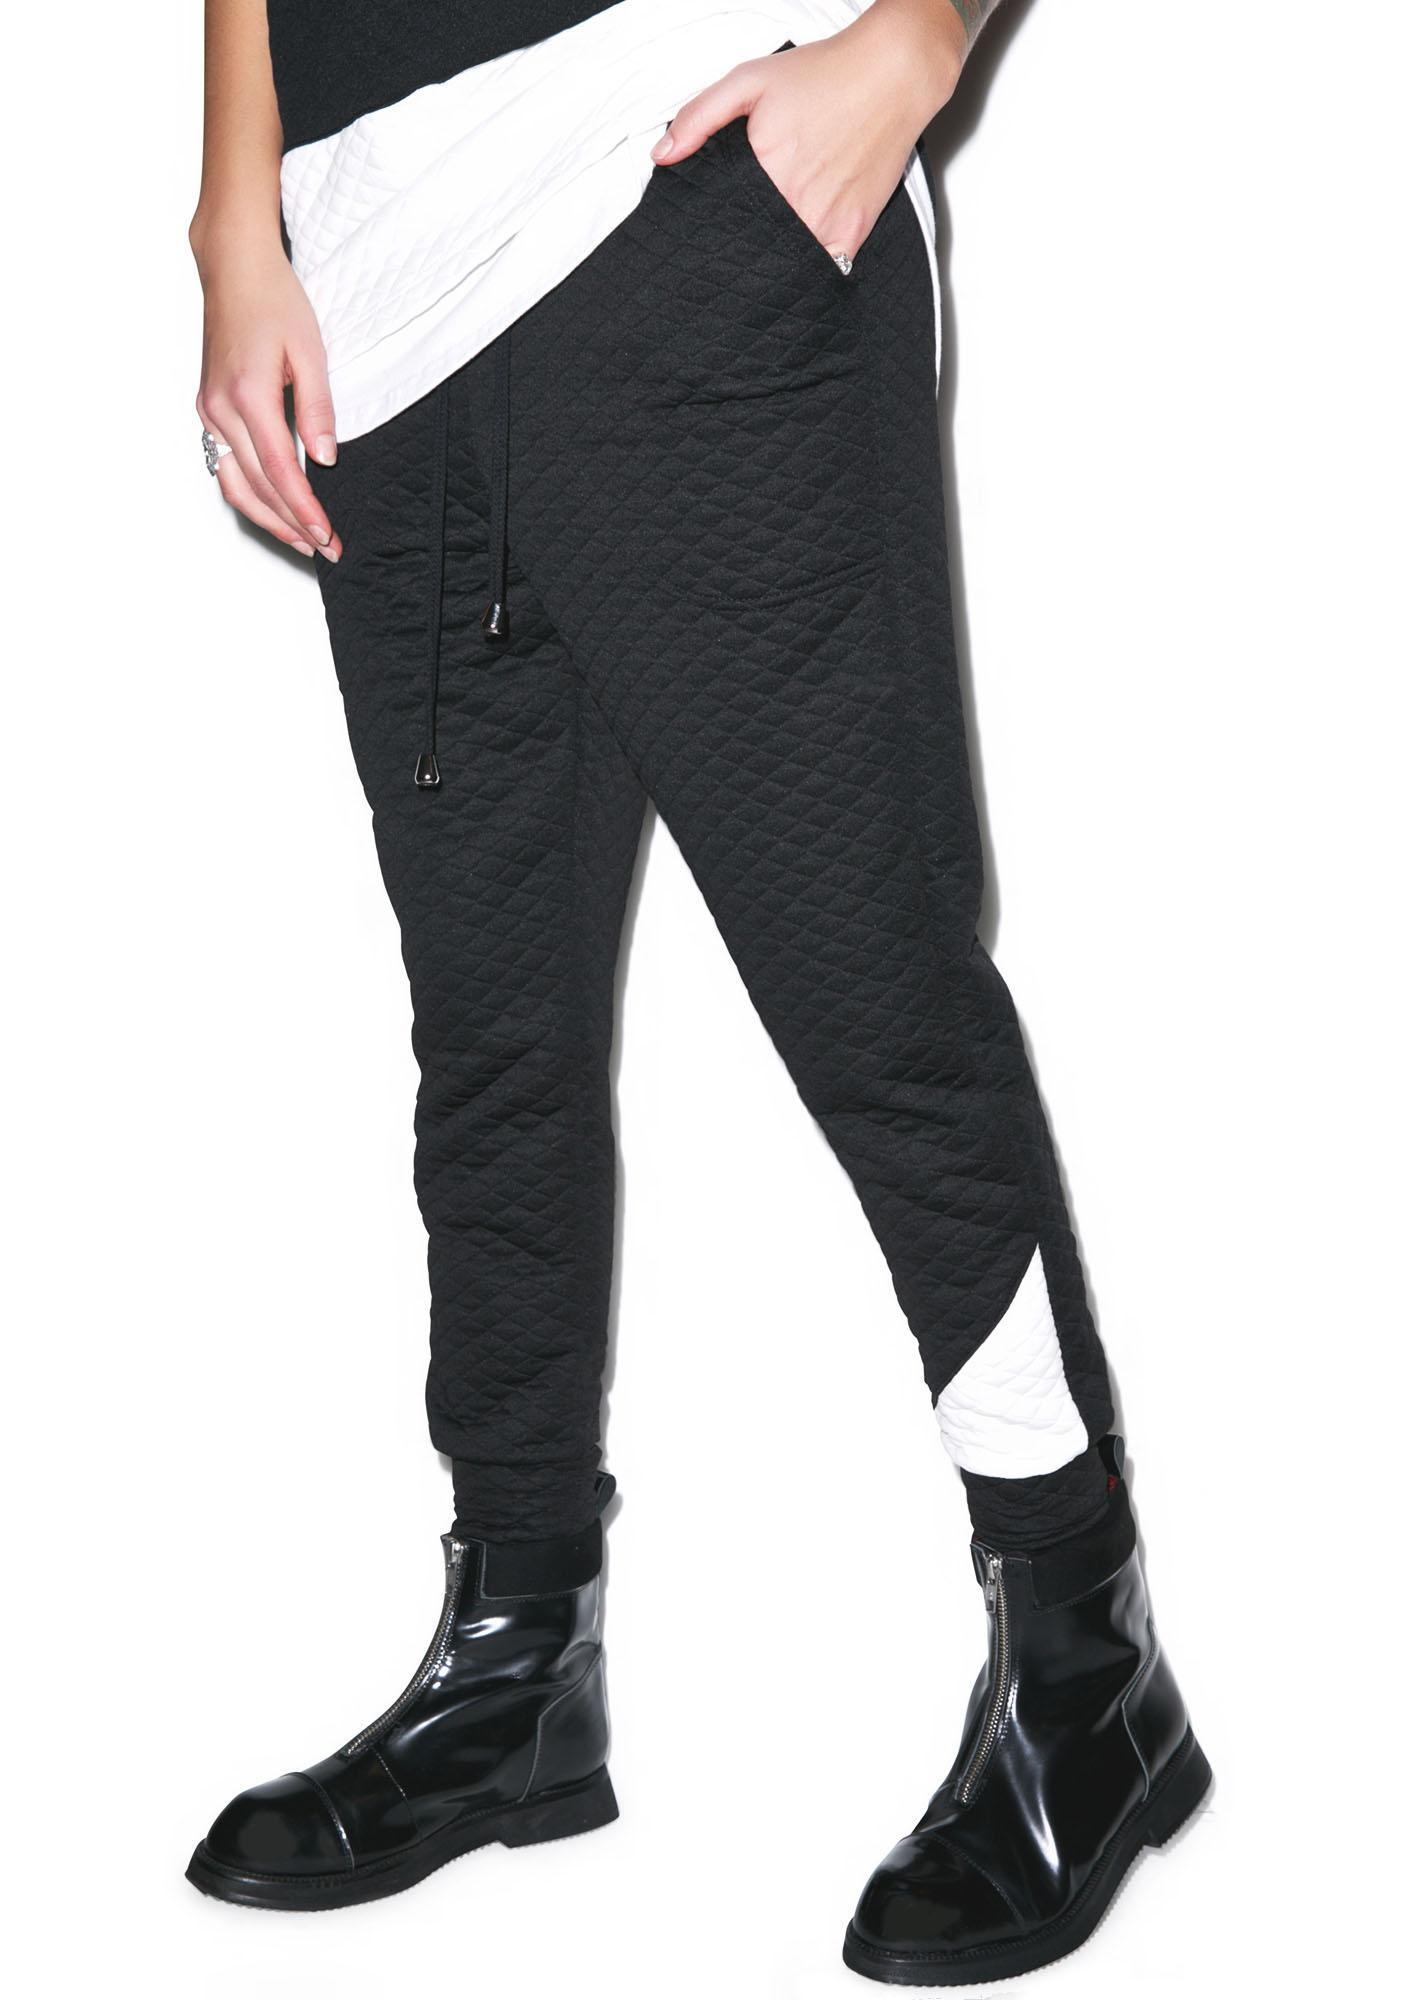 In The Clutch Jogger Pants